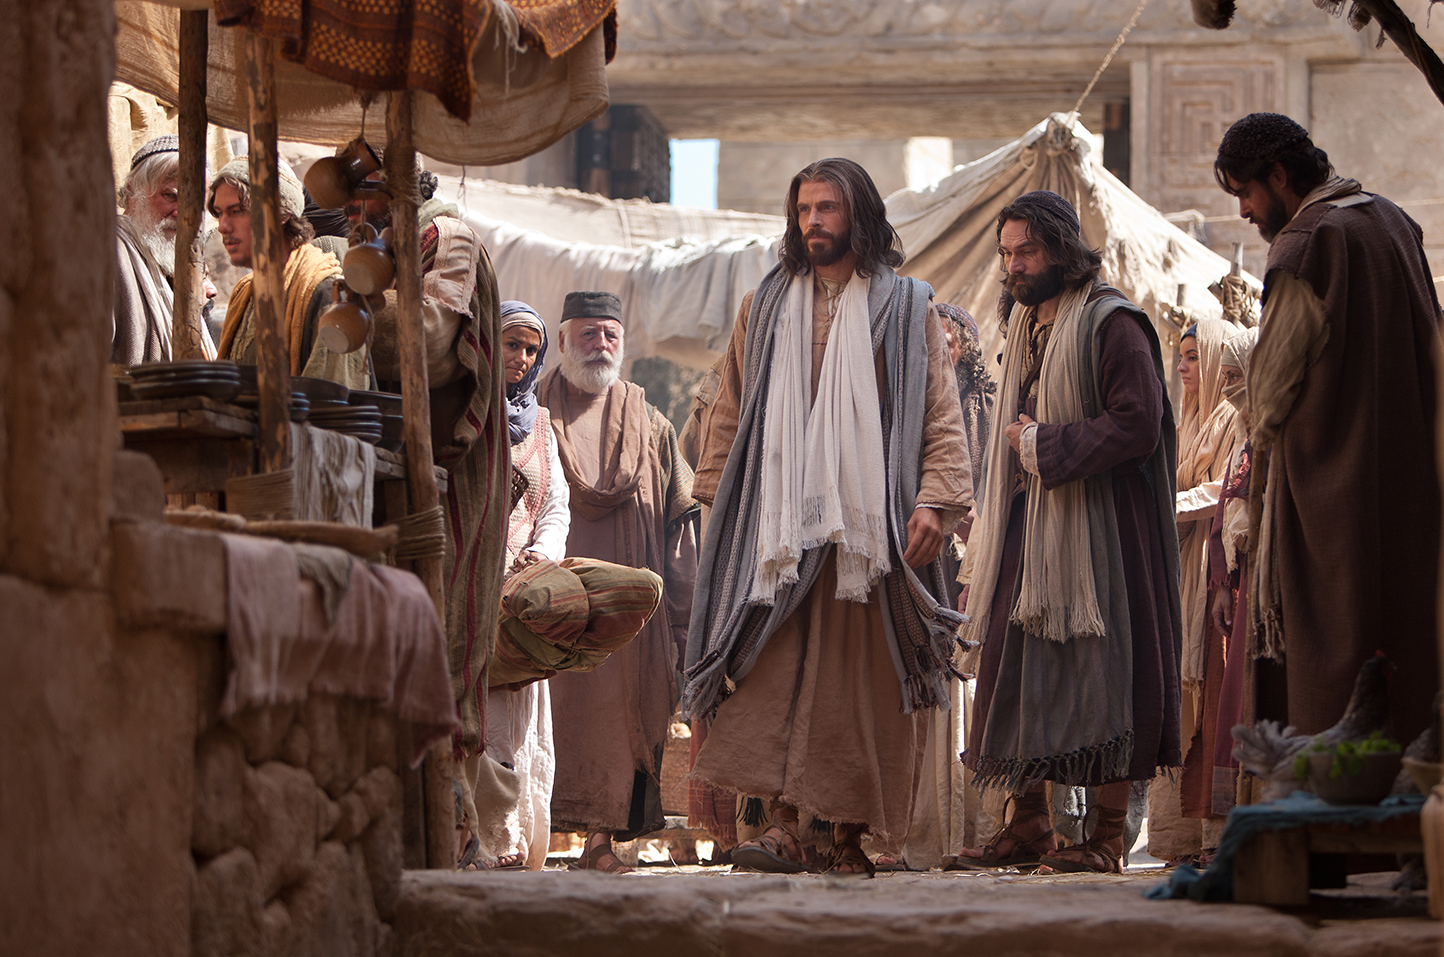 Jesus walking with others